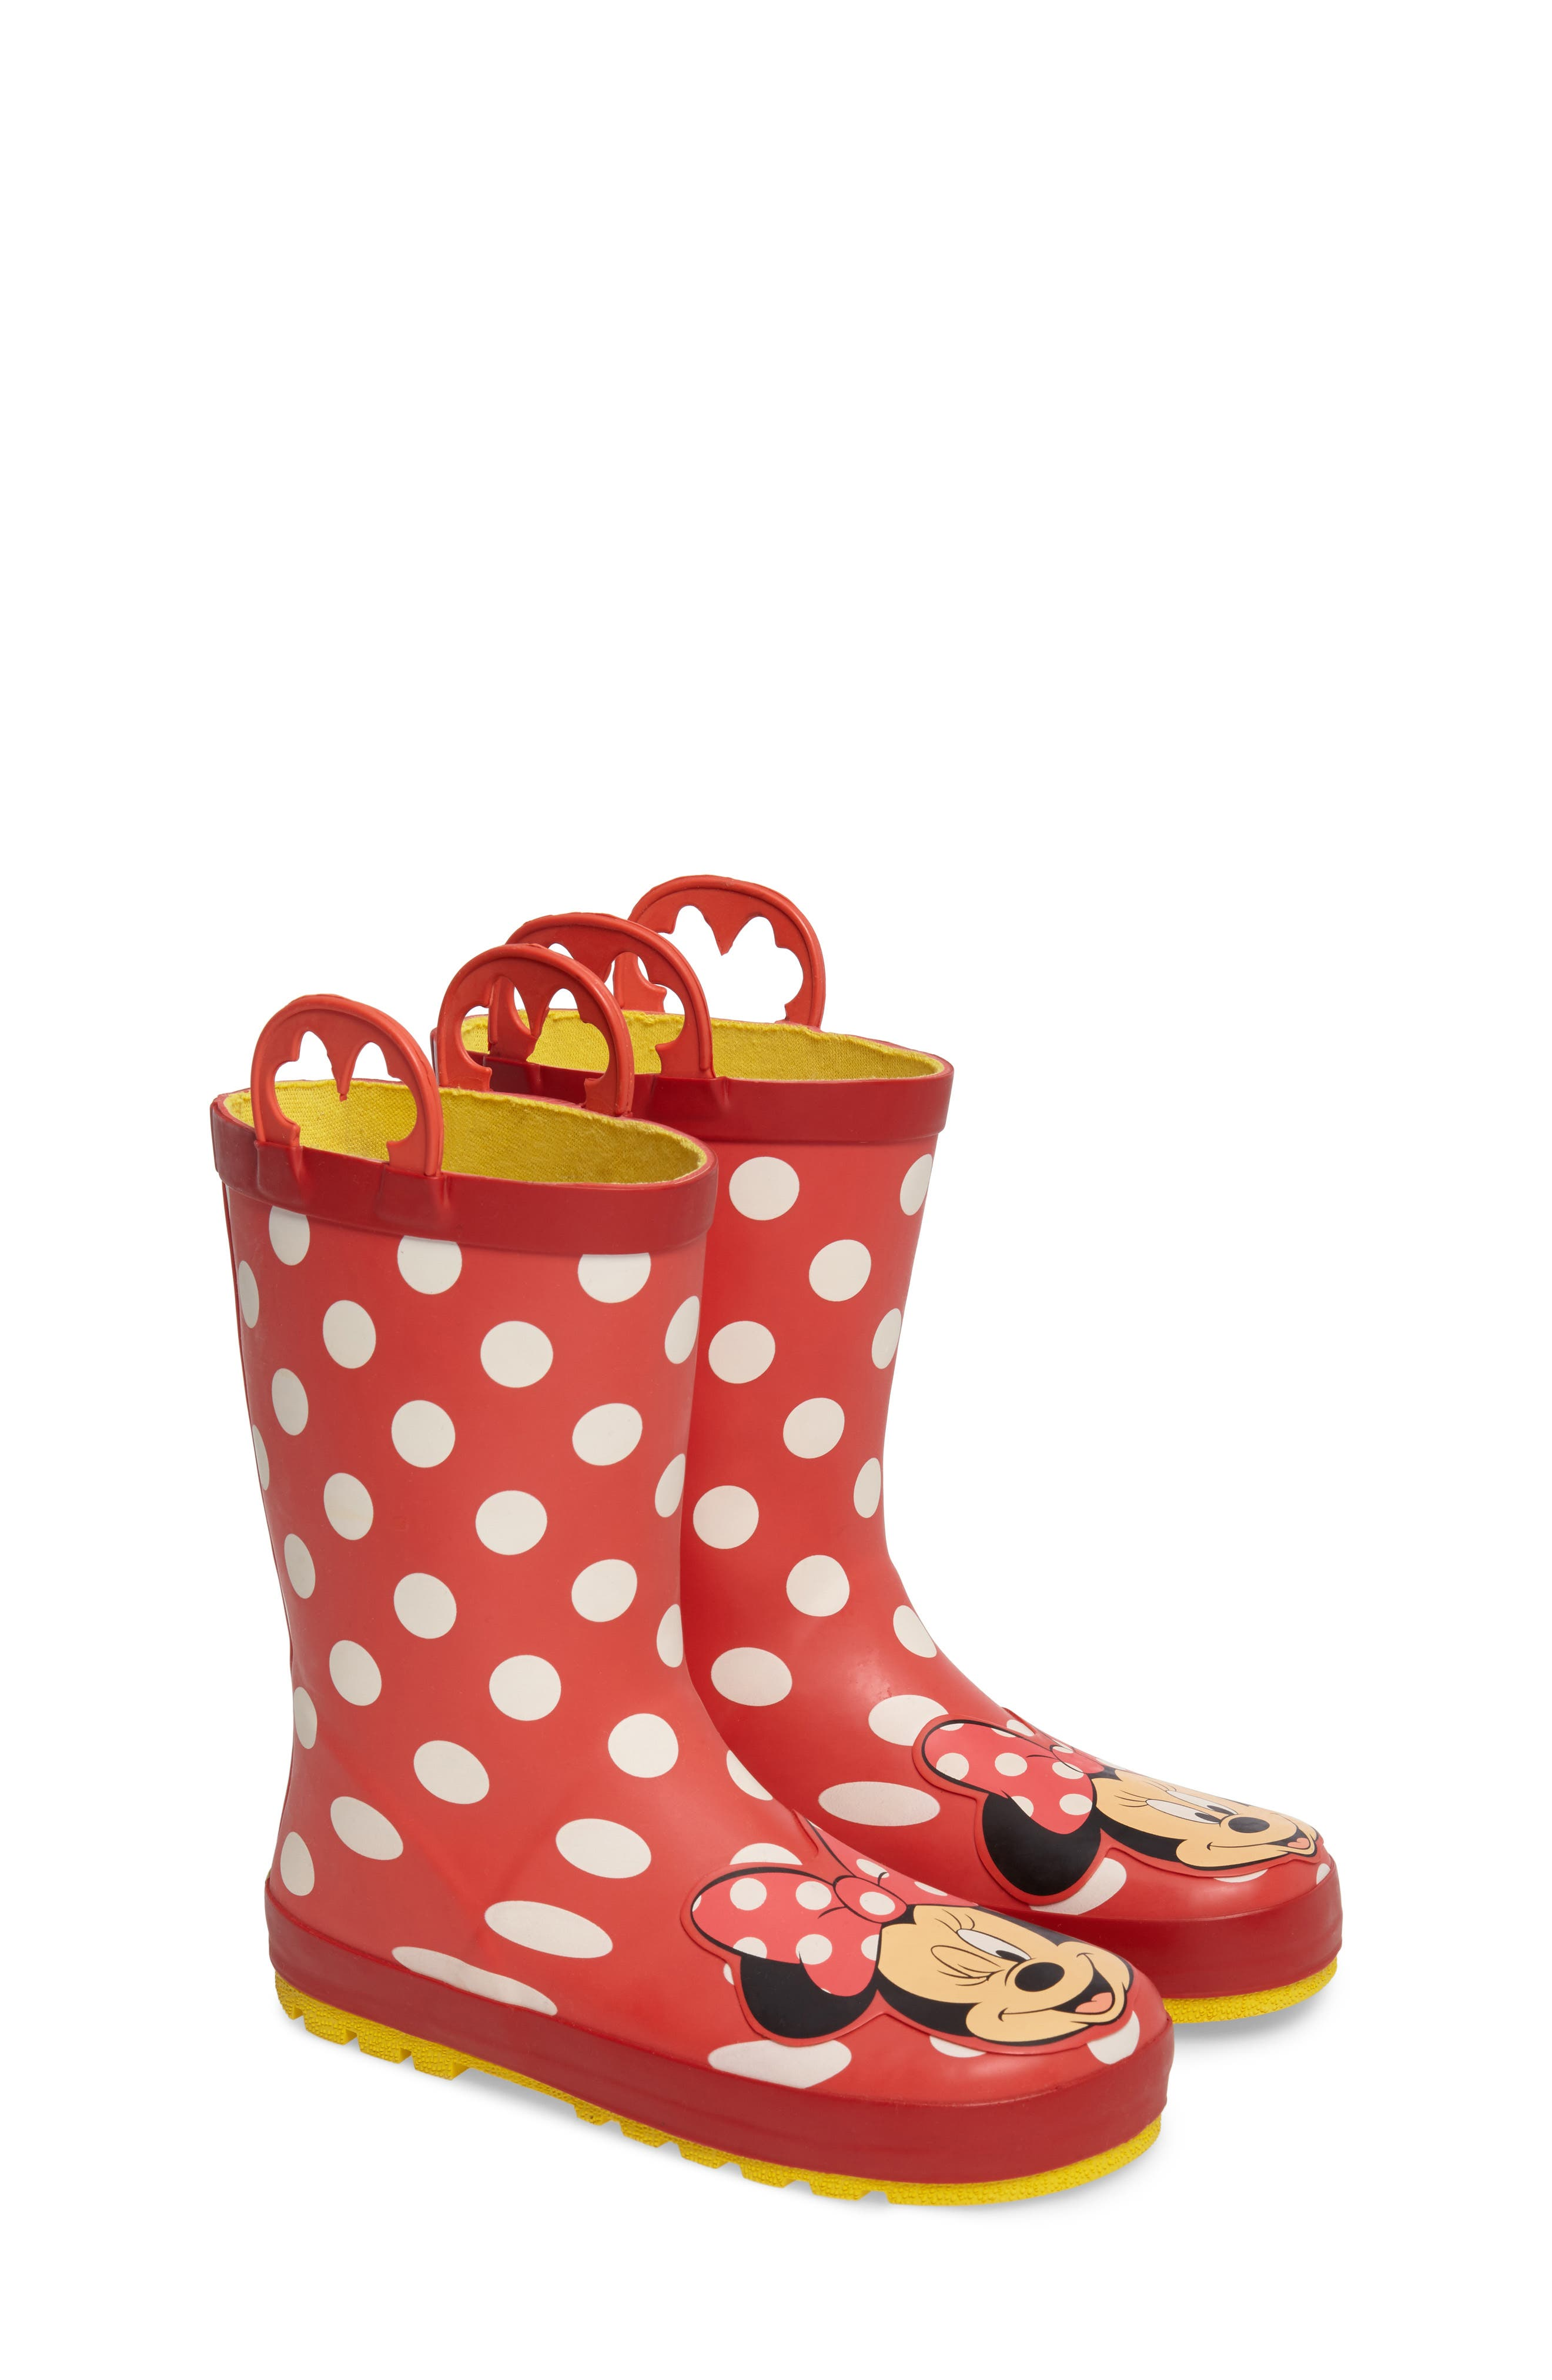 WESTERN CHIEF Minnie Mouse Rain Boot